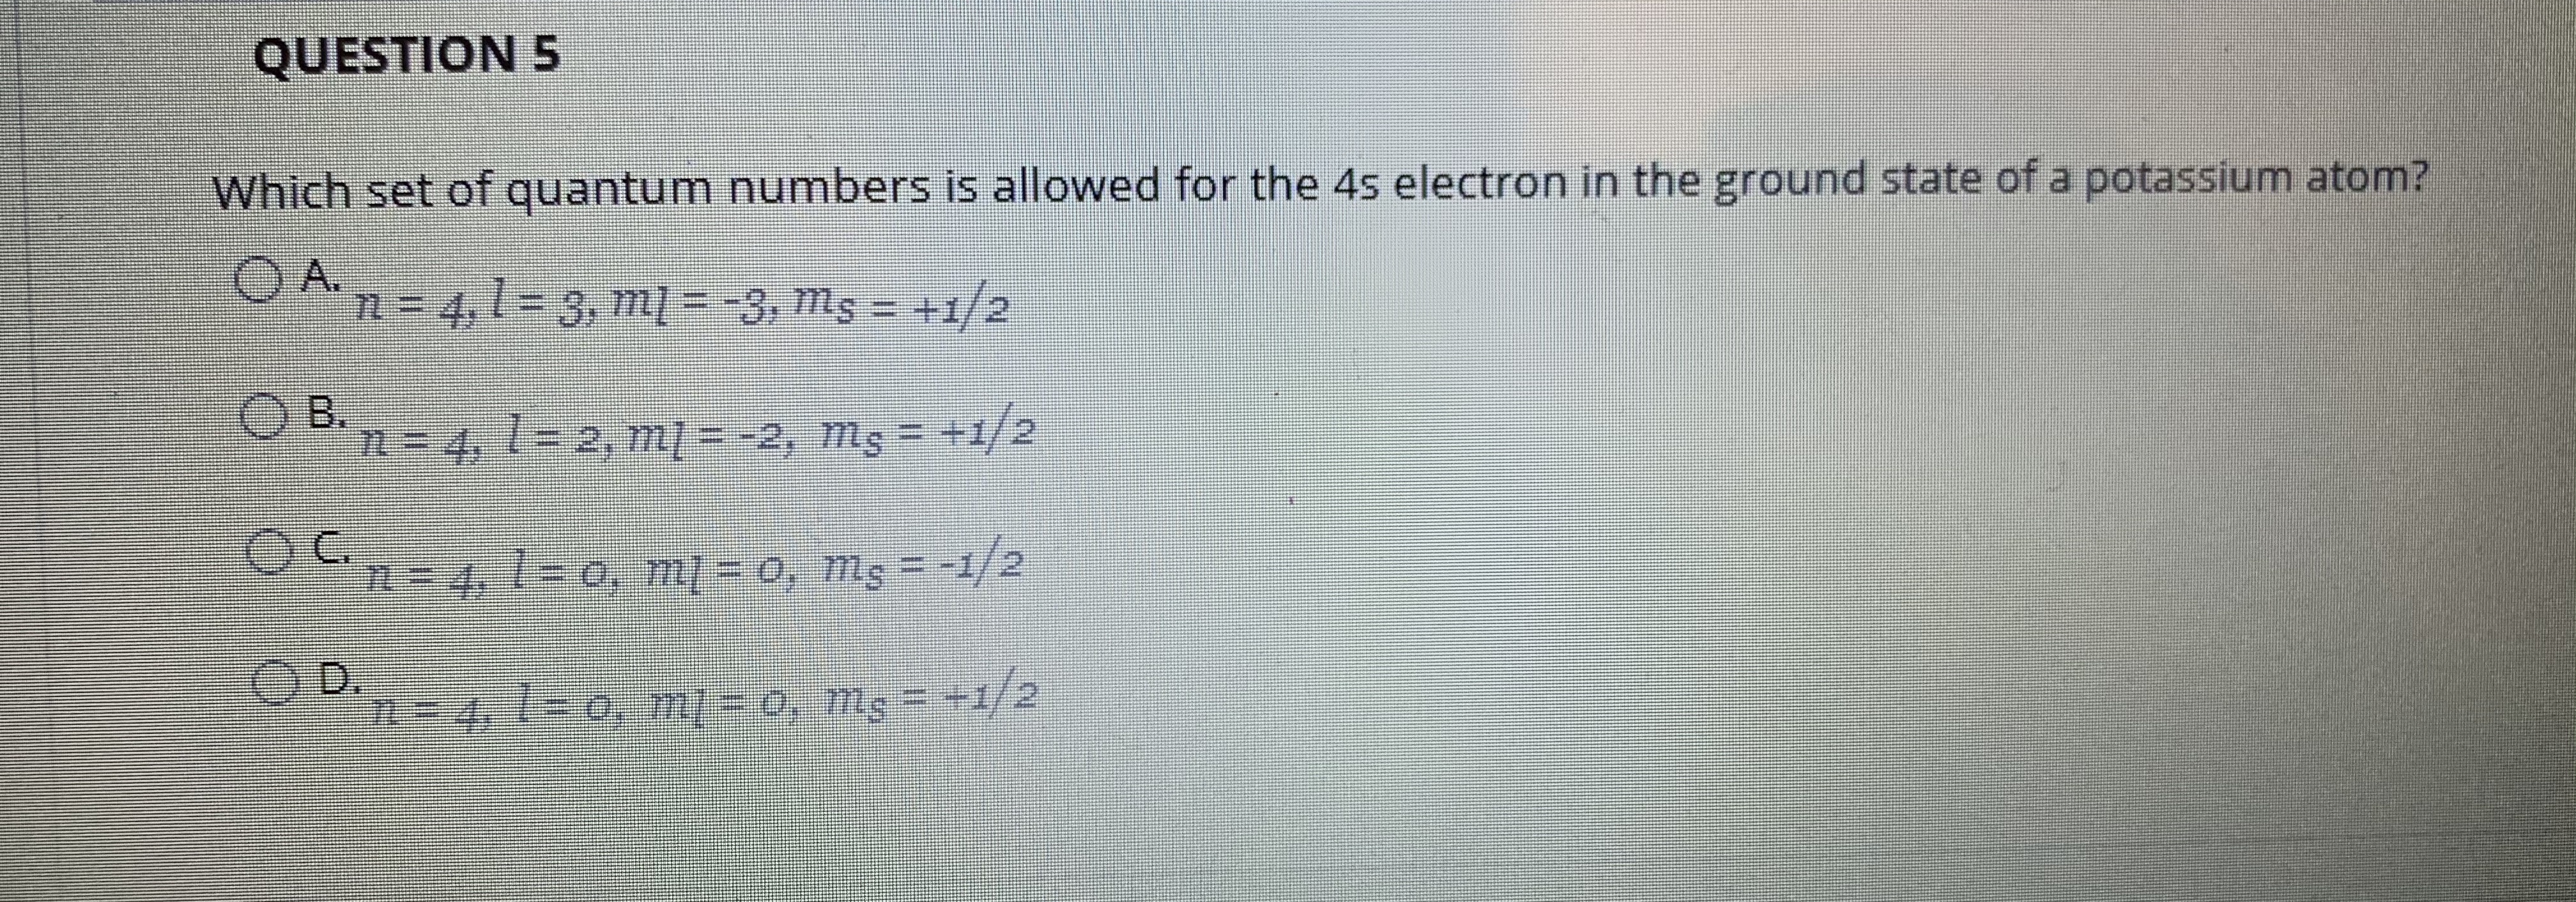 Which set of quantum numbers is allowed for the 4s electron in the ground state of a potassium atom?